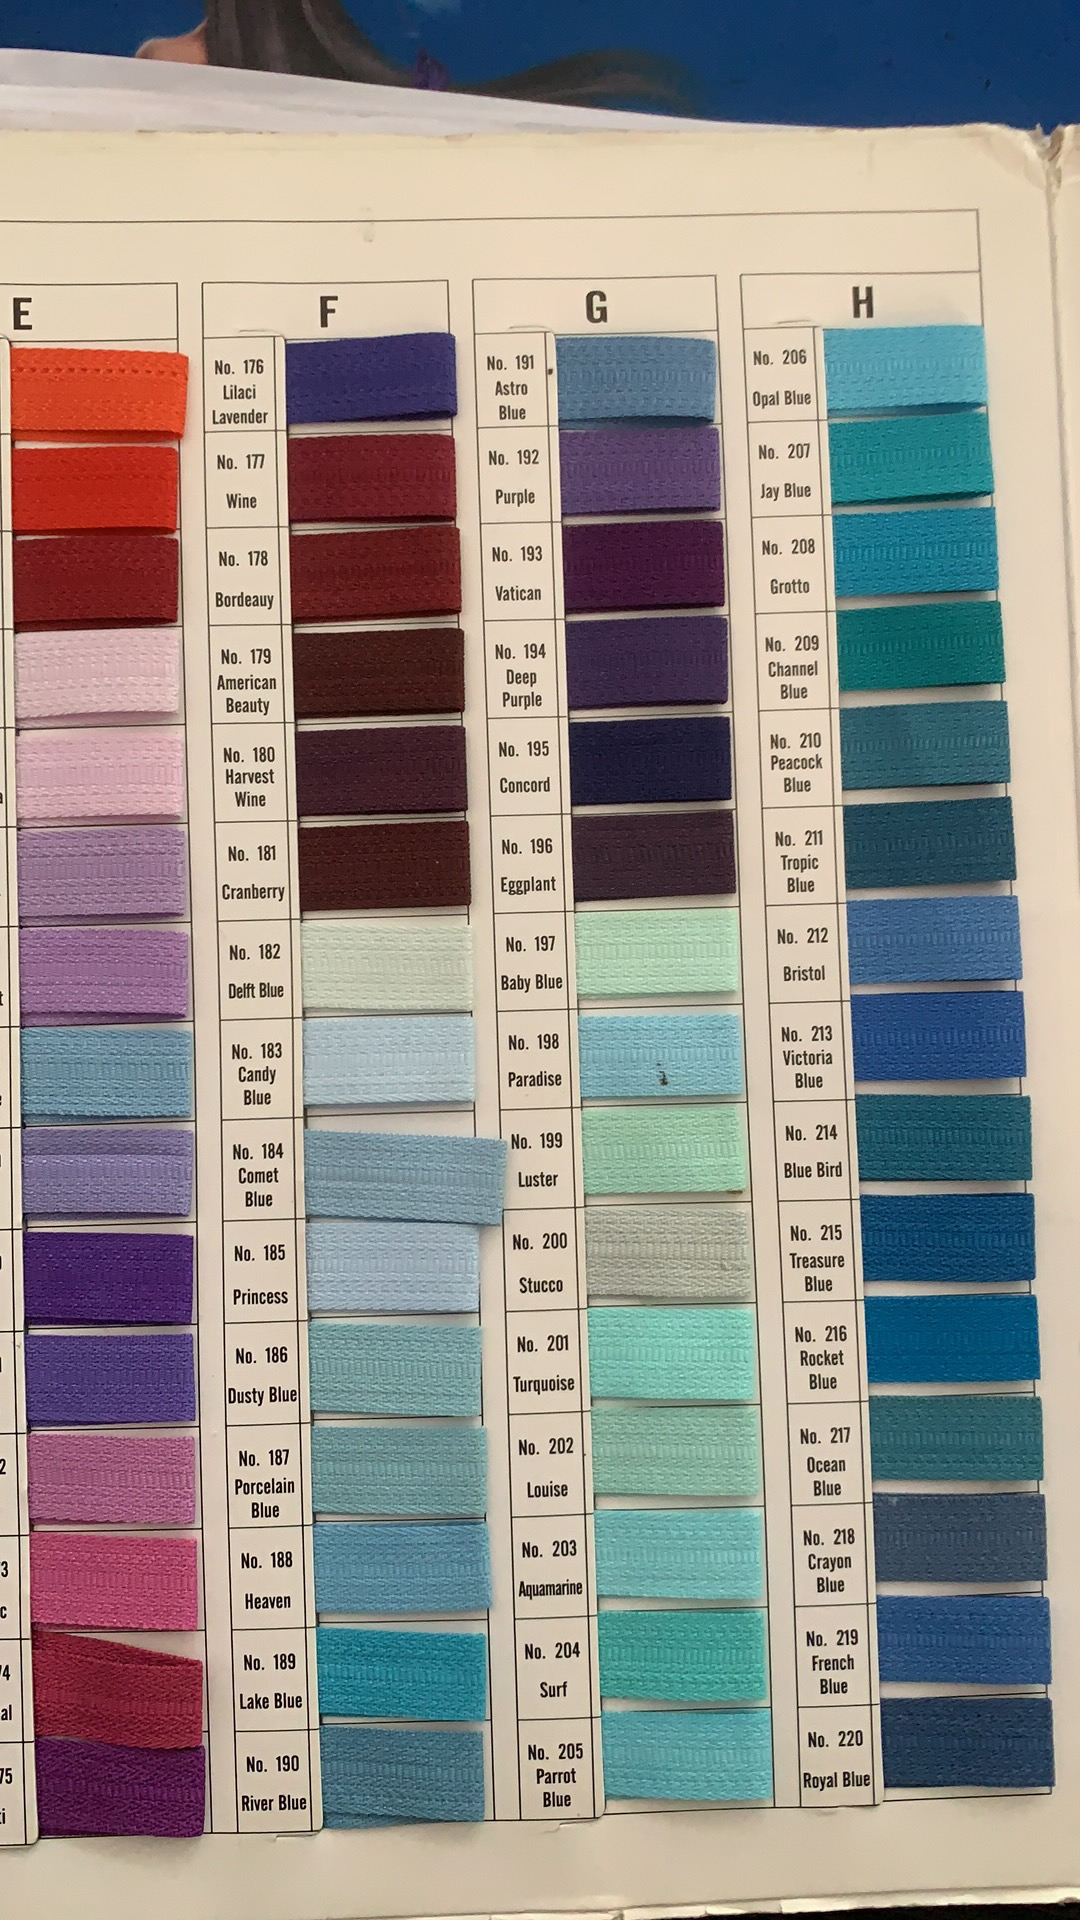 The Color Swatch For Zipper On The Laundry Mesh Bag